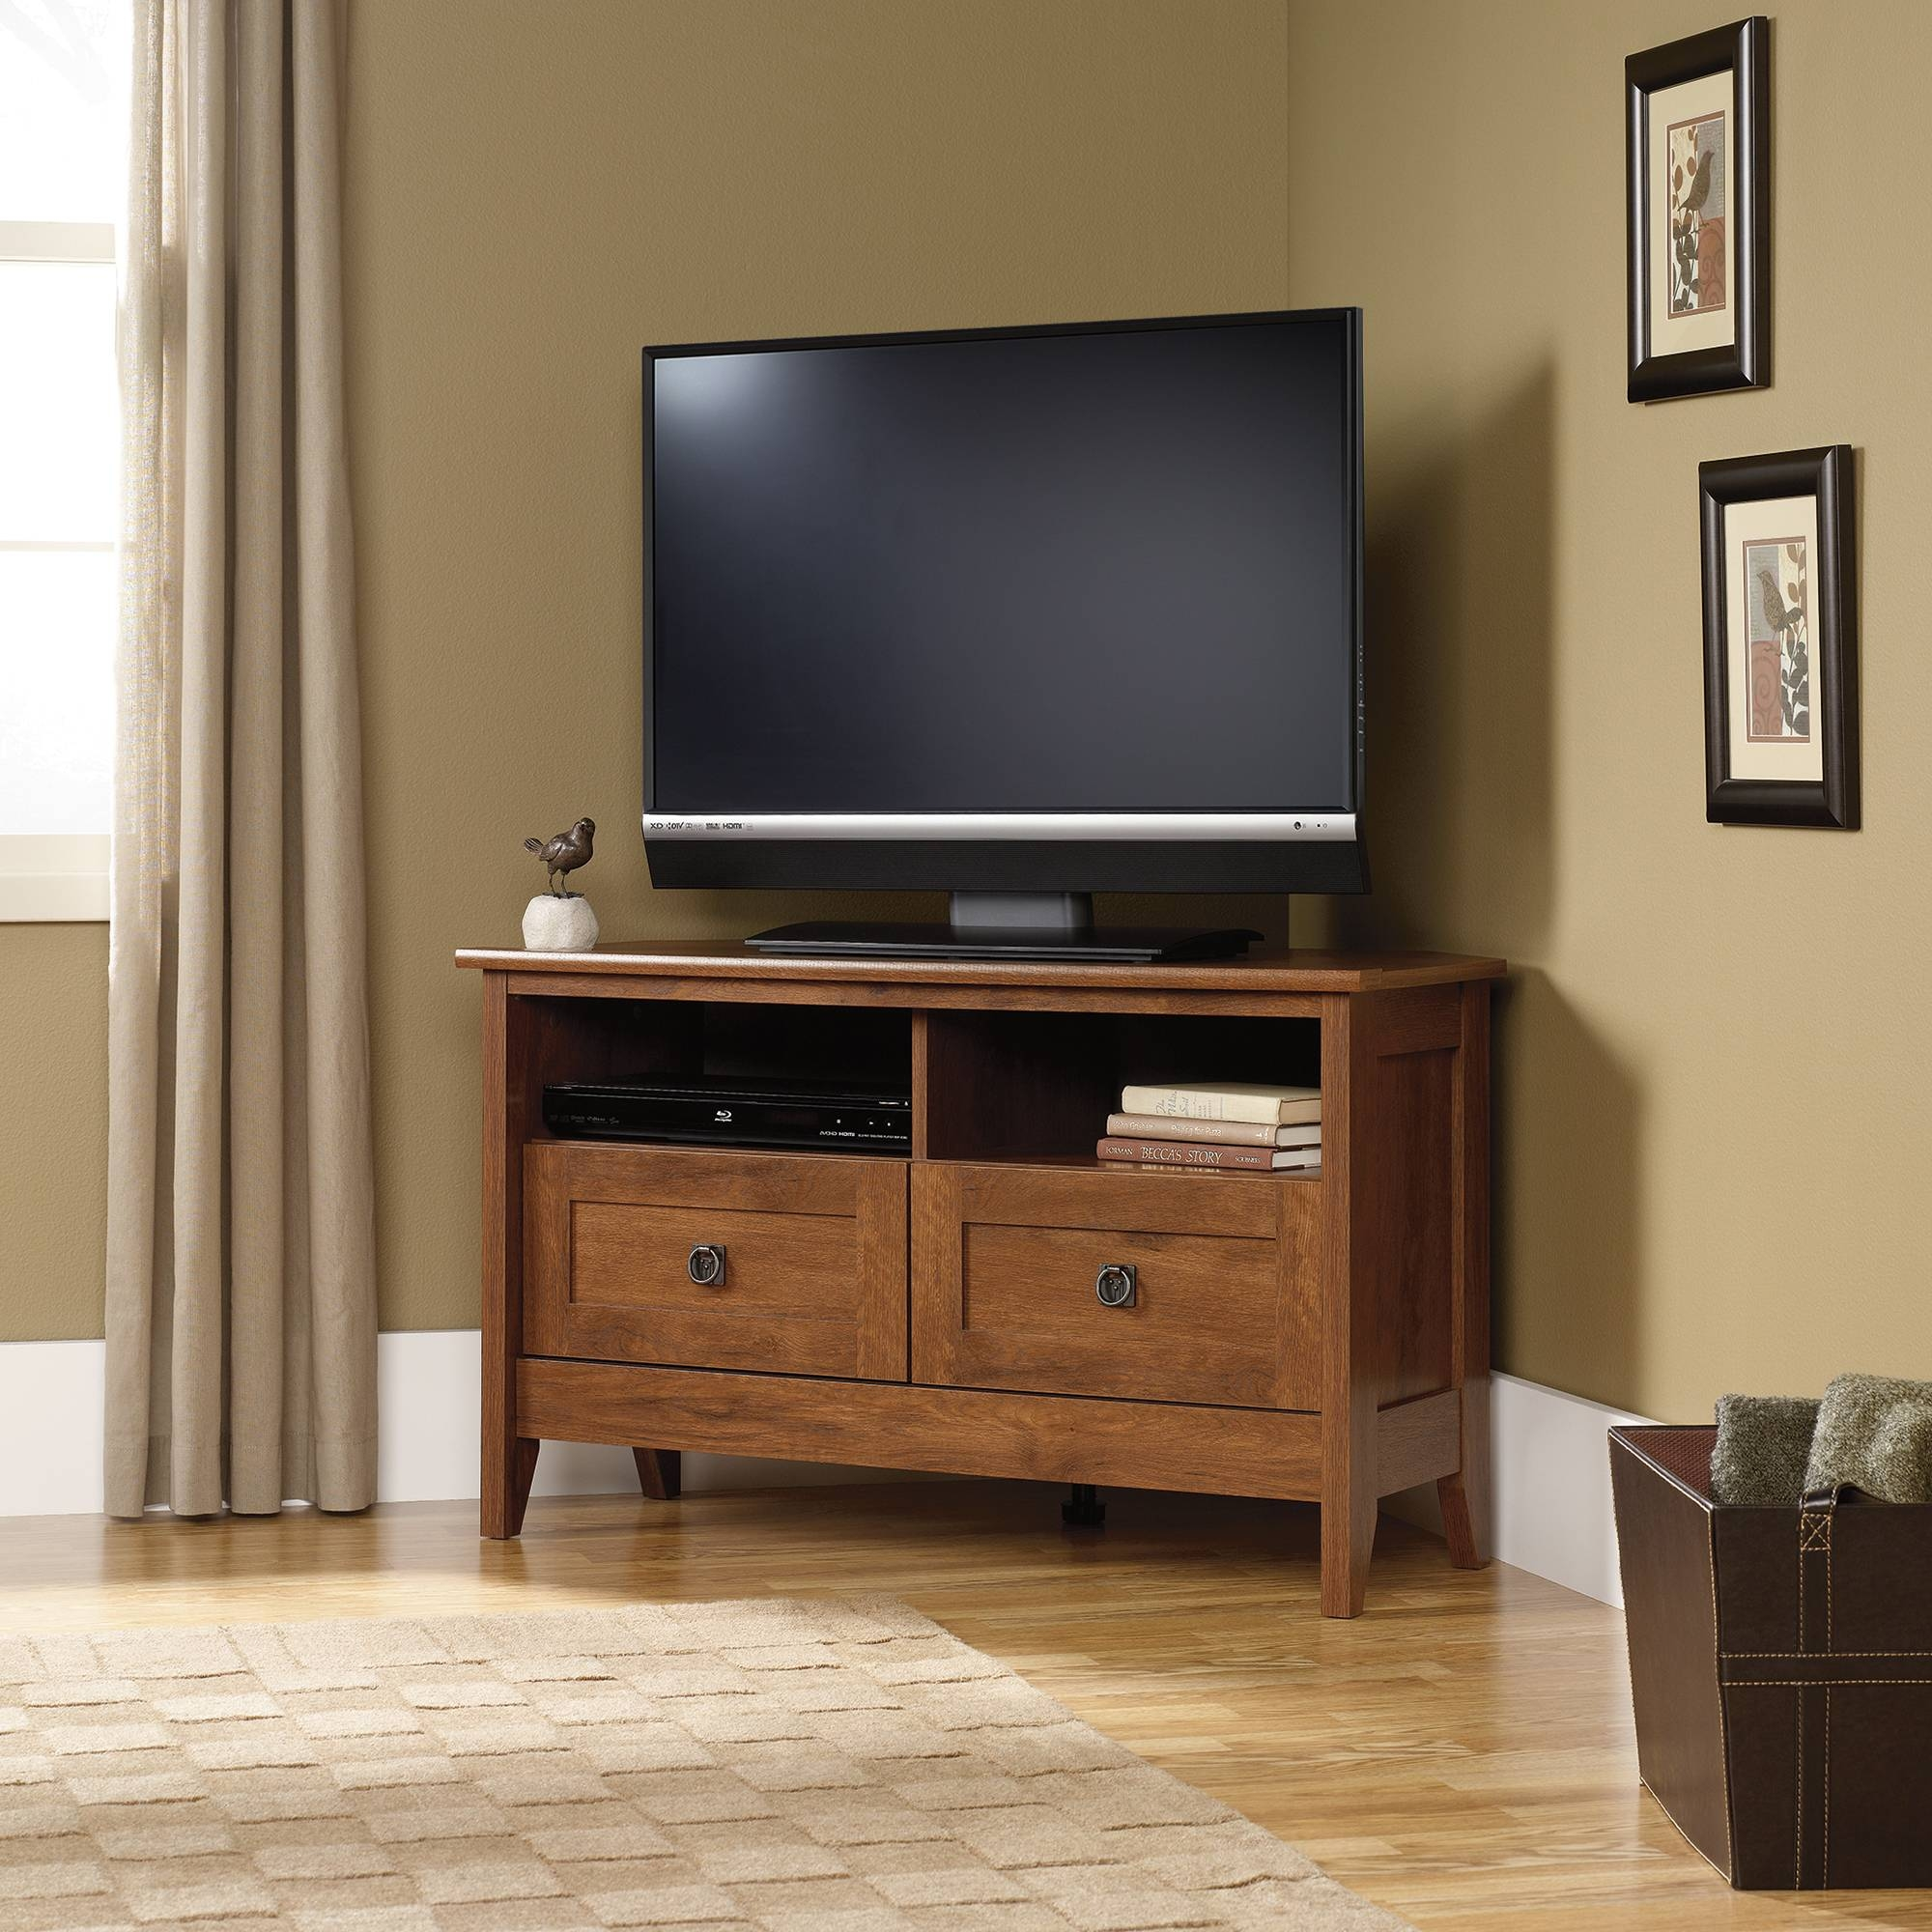 Sauder Select | Corner Tv Stand | 410627 | Sauder within Tv Stands for Corners (Image 11 of 15)